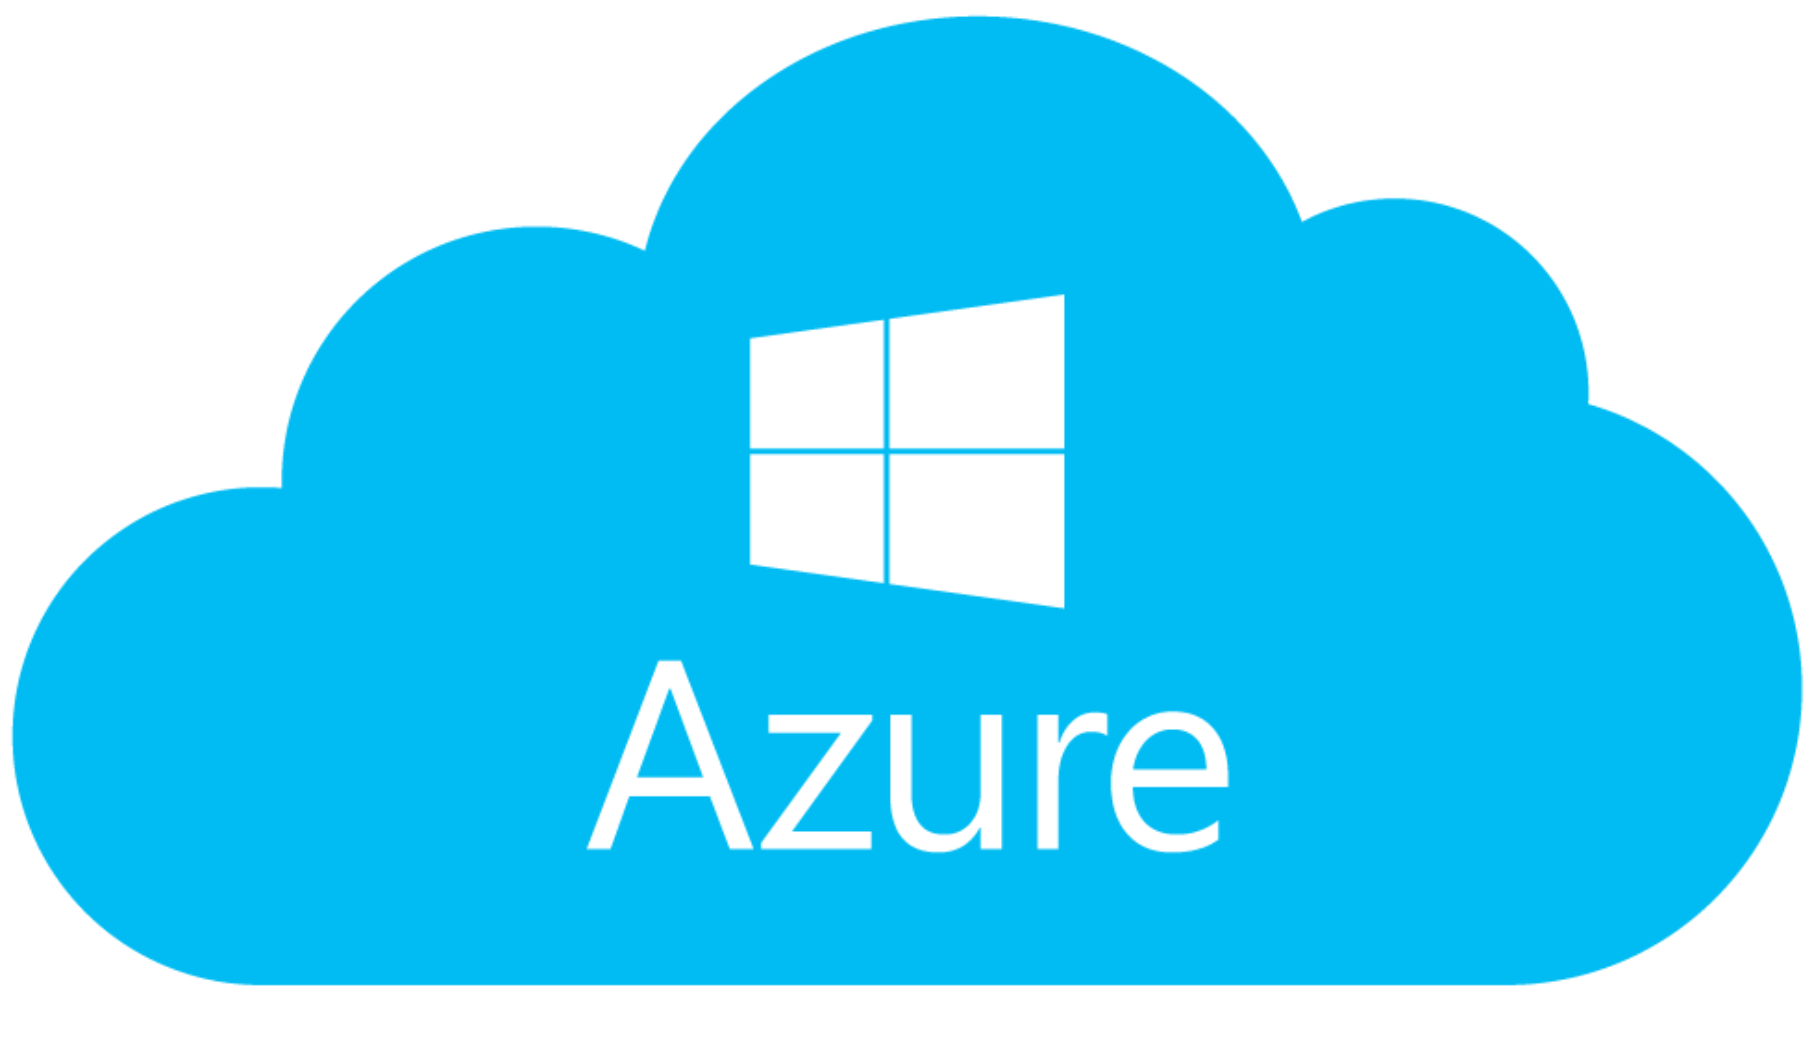 scaidata scaiplatform business intelligence free cloud on microsoft's Azure Marketplace, where you can get started for free with scai self-service ScaiPlatform for cloud business intelligence and data management and connect to your existing Azure SQL infrastructure